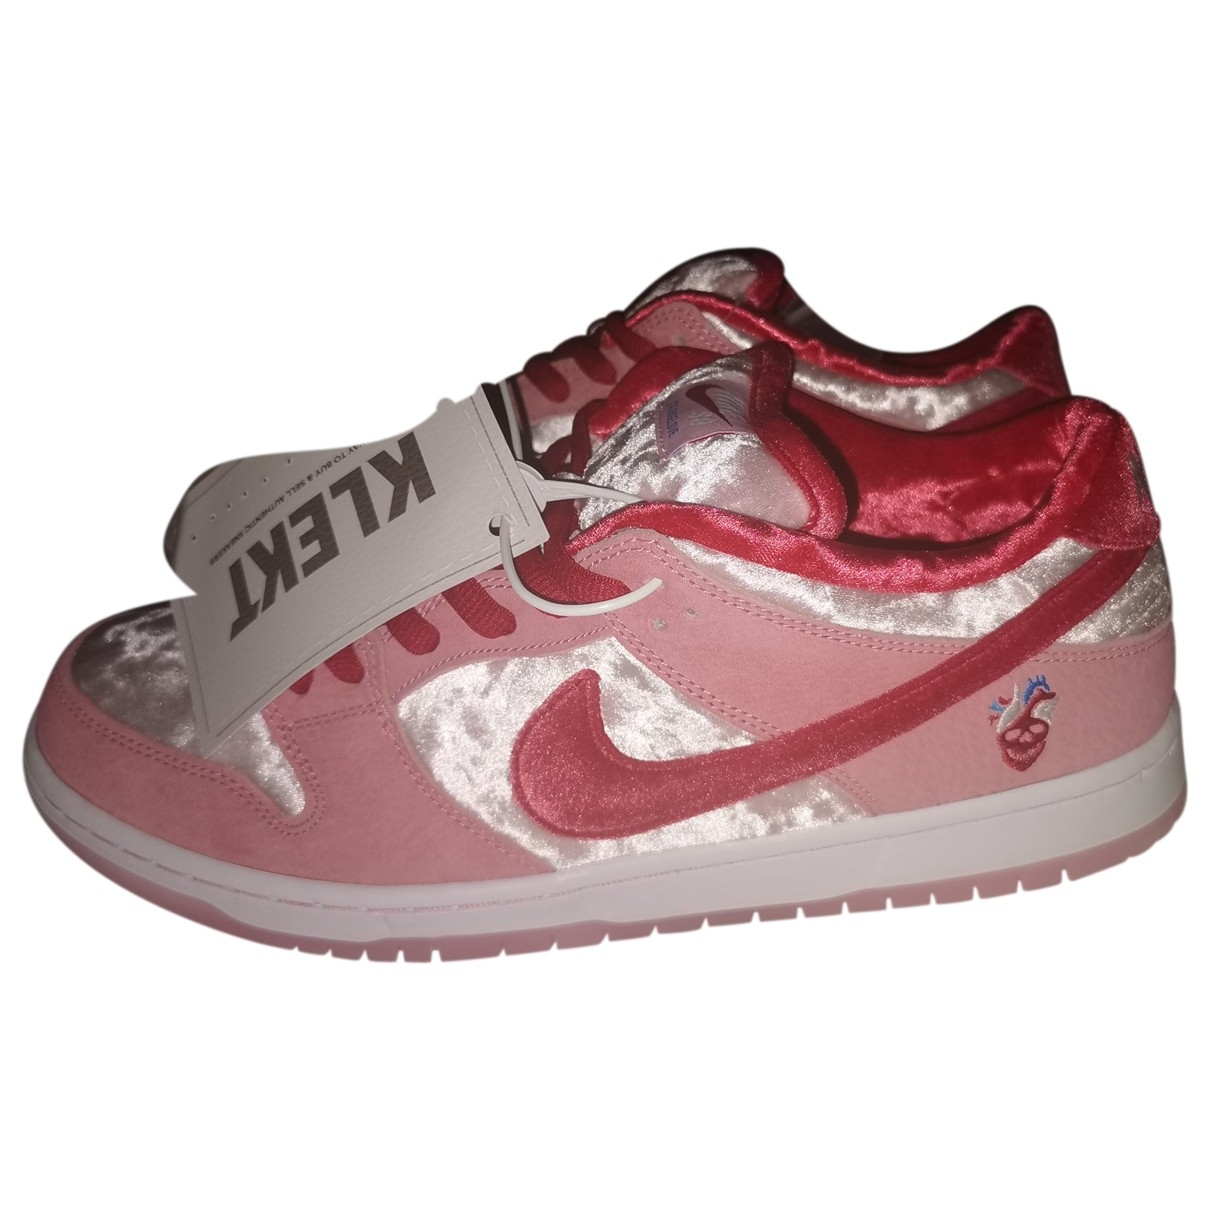 Nike SB Dunk  Pink Suede Trainers for Men 45.5 EU